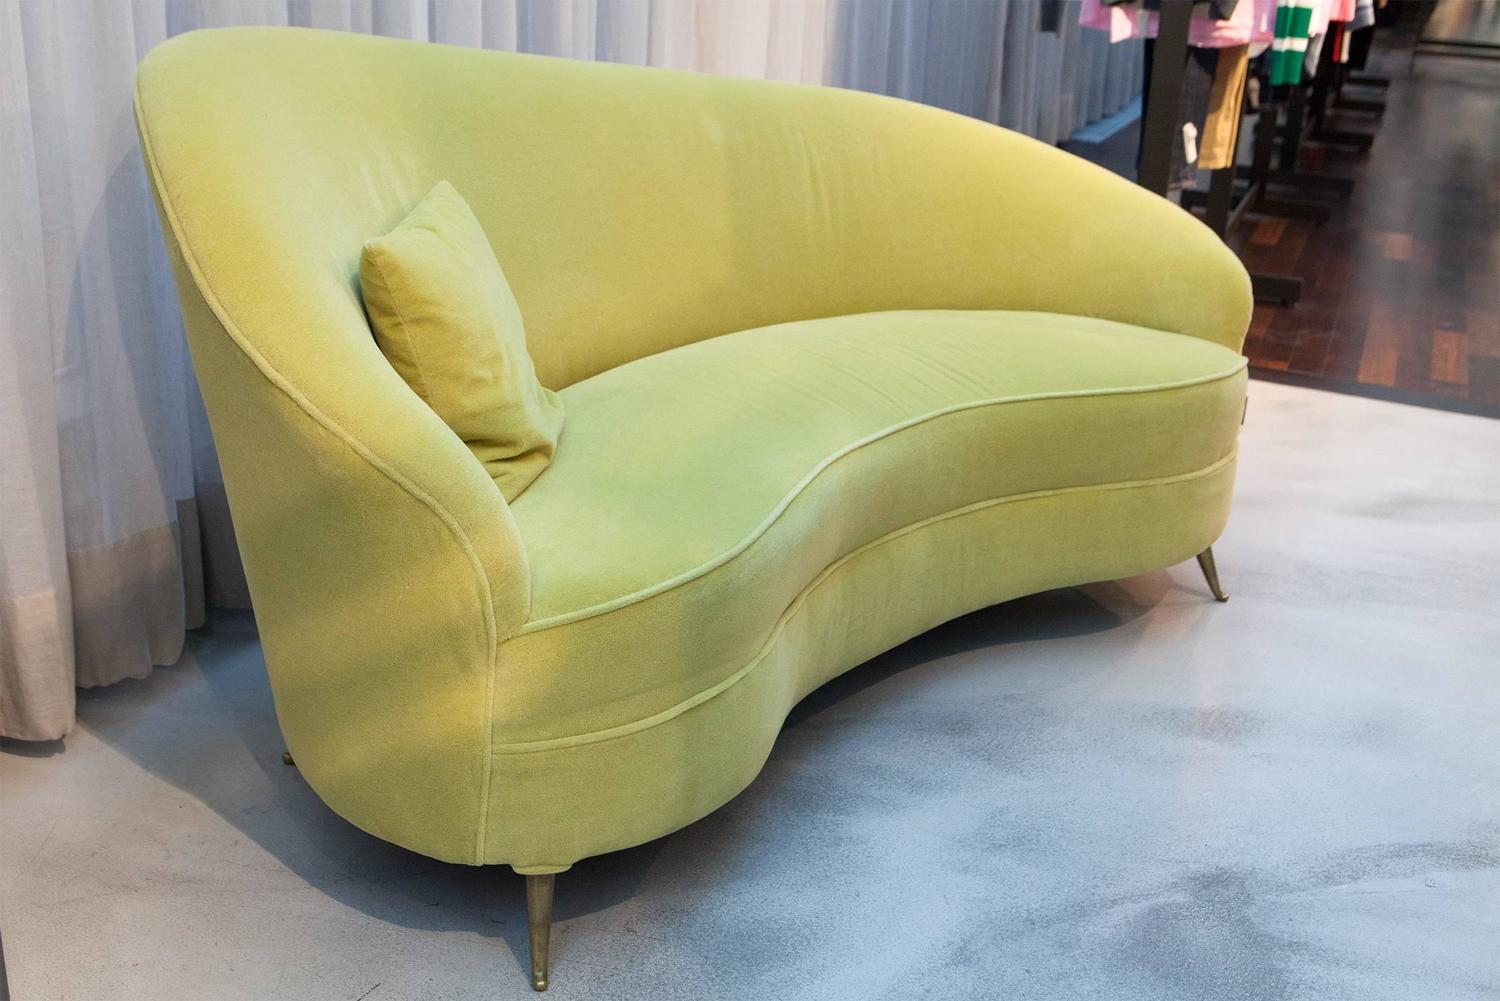 italian cosy chaise longue sofa in mustard for sale at 1stdibs. Black Bedroom Furniture Sets. Home Design Ideas